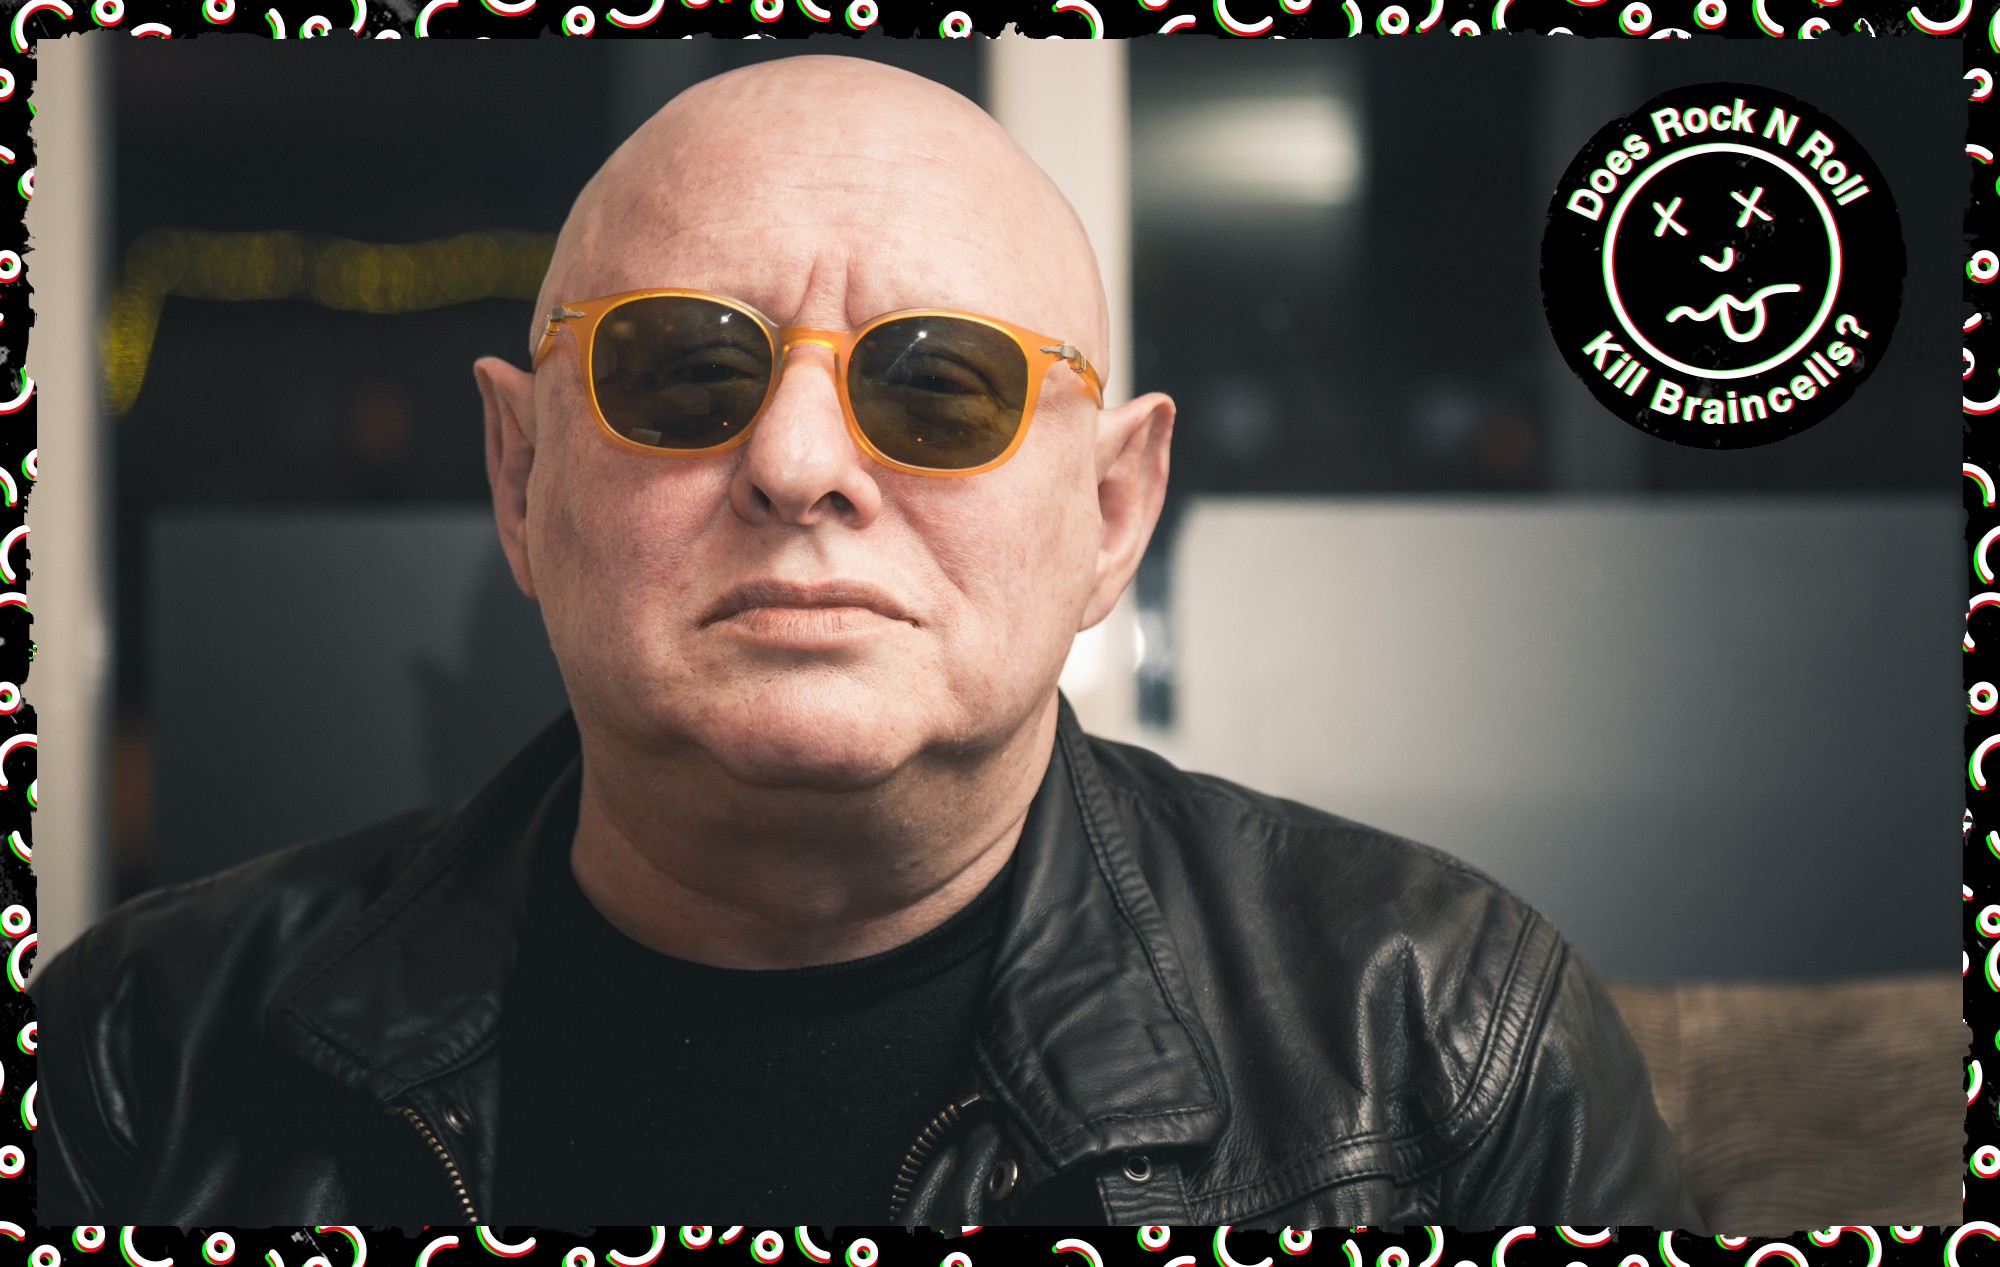 Does Rock 'N' Roll Kill Braincells?! Shaun Ryder NME